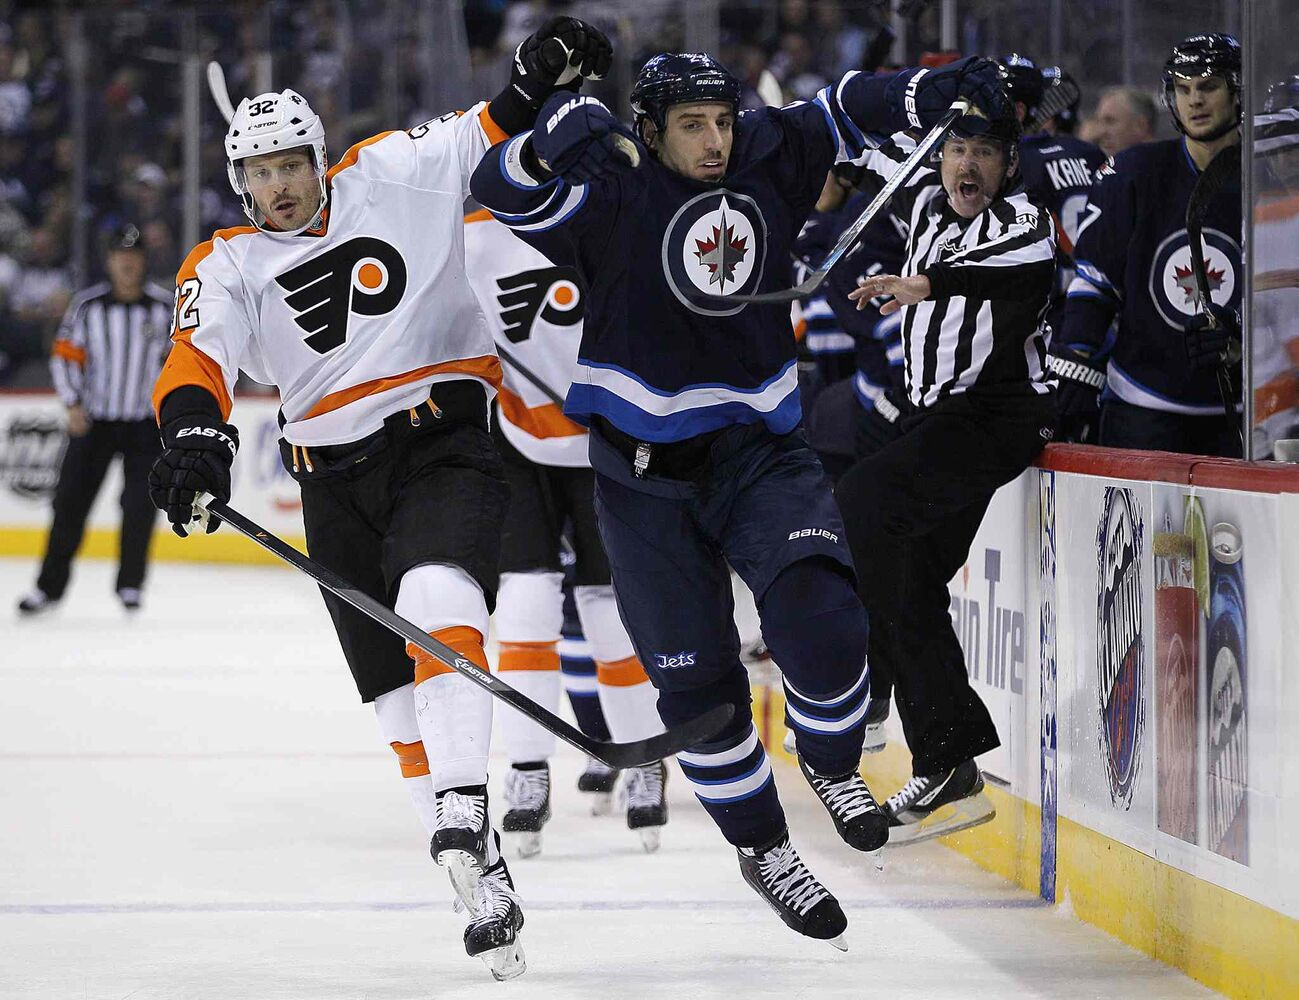 Philadelphia Flyers' Mark Streit (left) and Winnipeg Jets forward Chris Thorburn race for the puck during the second period. (JOHN WOODS / THE CANADIAN PRESS)